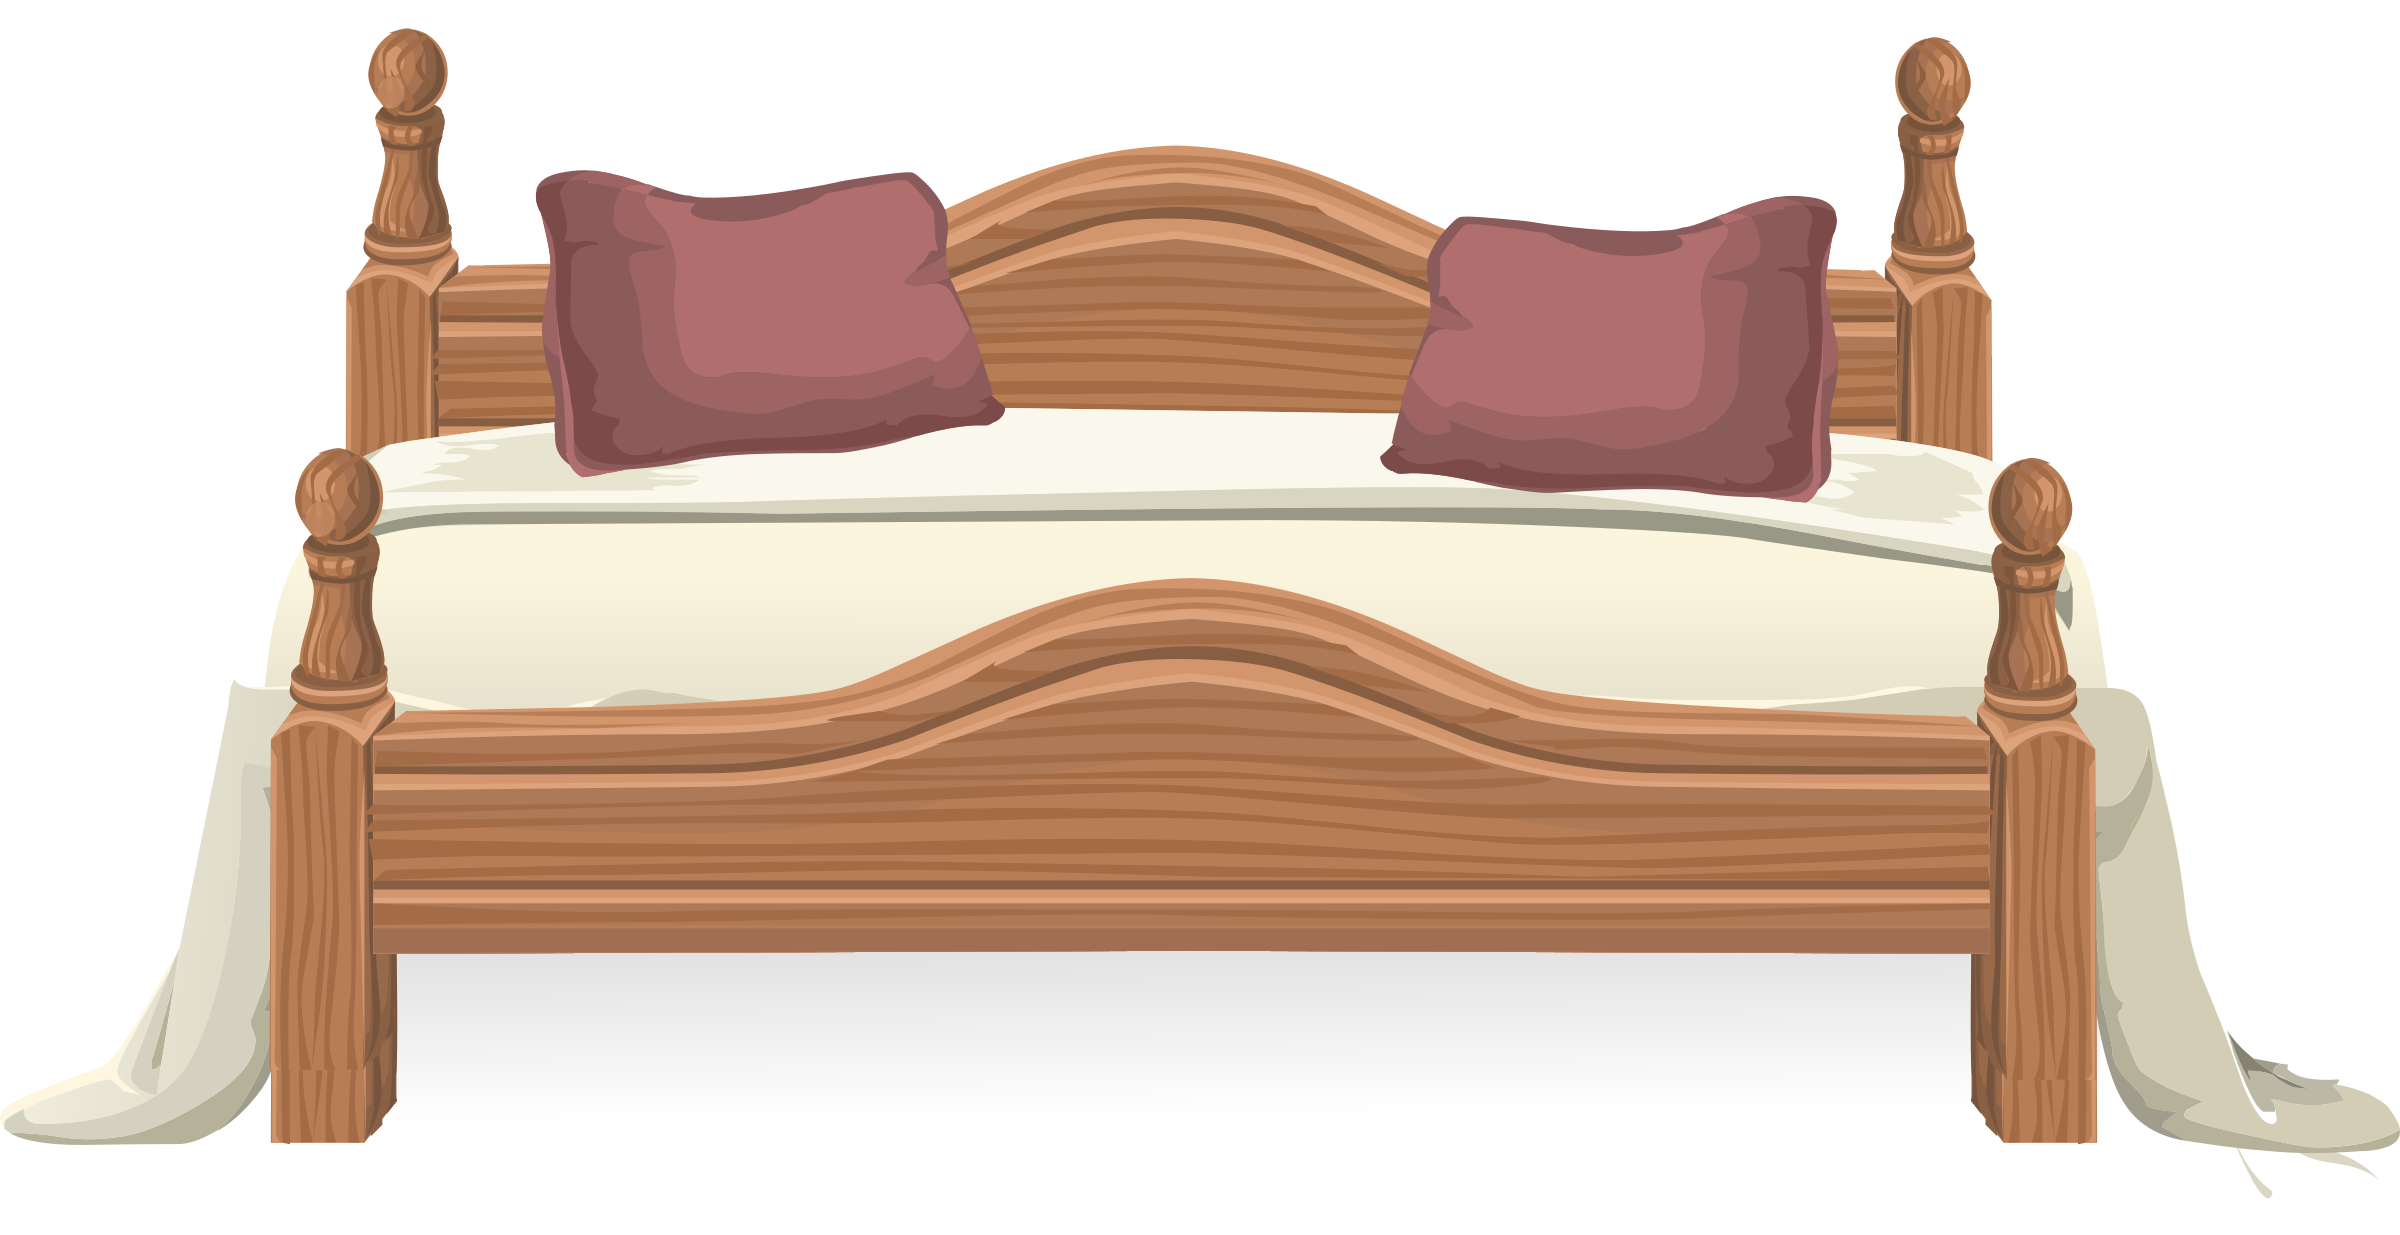 Clipart bed big bed. From glitch image png